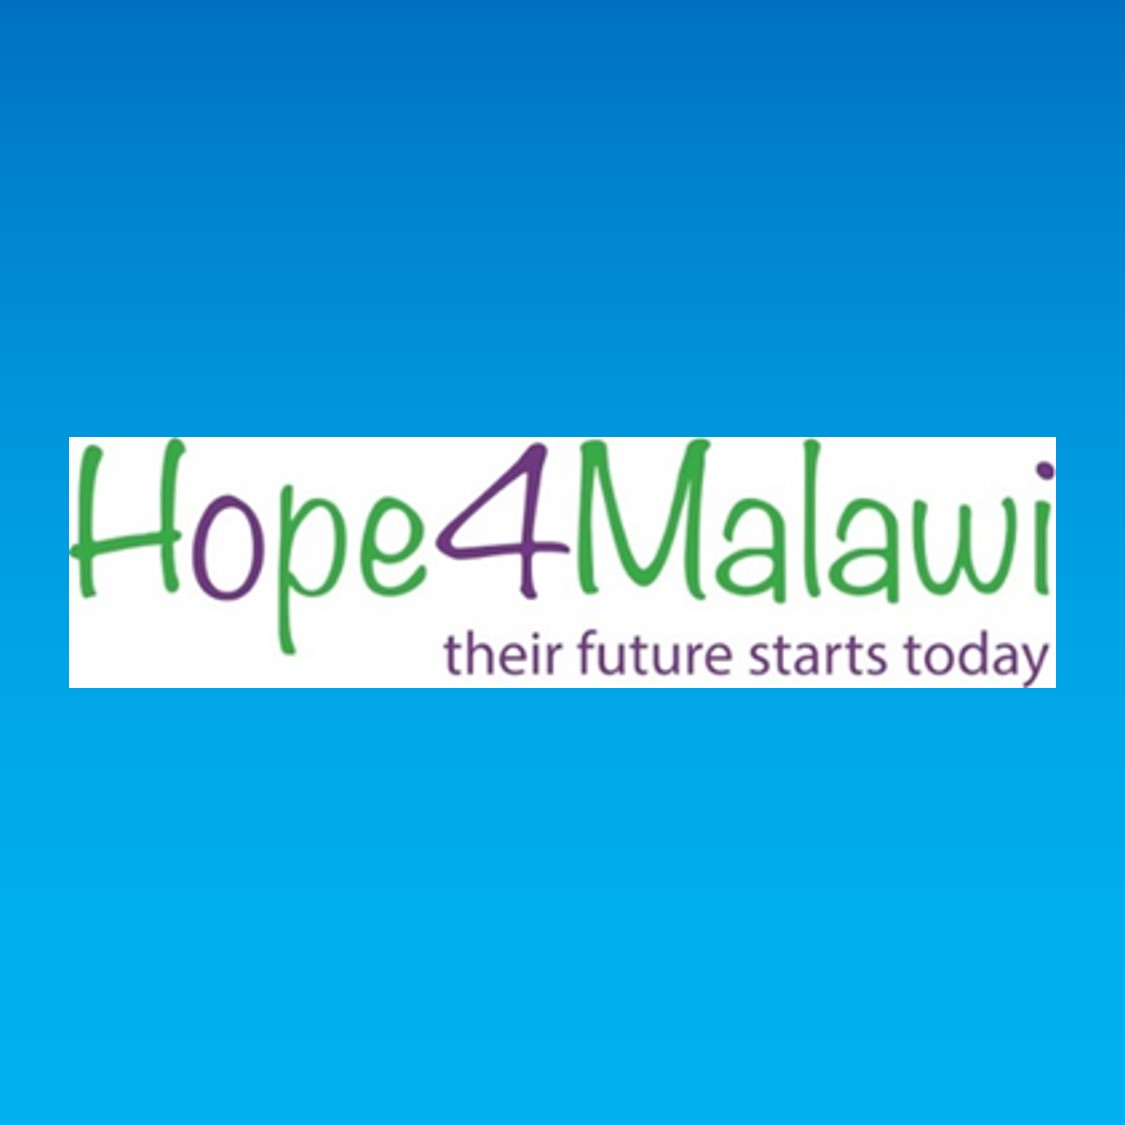 *Hope4Malawi*Hope4Malawi aims to bring hope to poor people living in rural Malawi. Through providing 'Food for the Body', 'Food for the Mind', and 'Food for the Soul', we seek to ensure people are well fed, educated and know and serve Jesus. Hope4Malawi's work is focused on developing three primary schools, providing feeding programmes, fully resourced libraries and classrooms and teacher training and support, whilst providing bible teaching in their local communities. We also provide opportunities for secondary education through our sponsorship programme and are currently building a local secondary school.  Find out more at hope4malawi.org and by contacting Sara info@hope4malawi.org